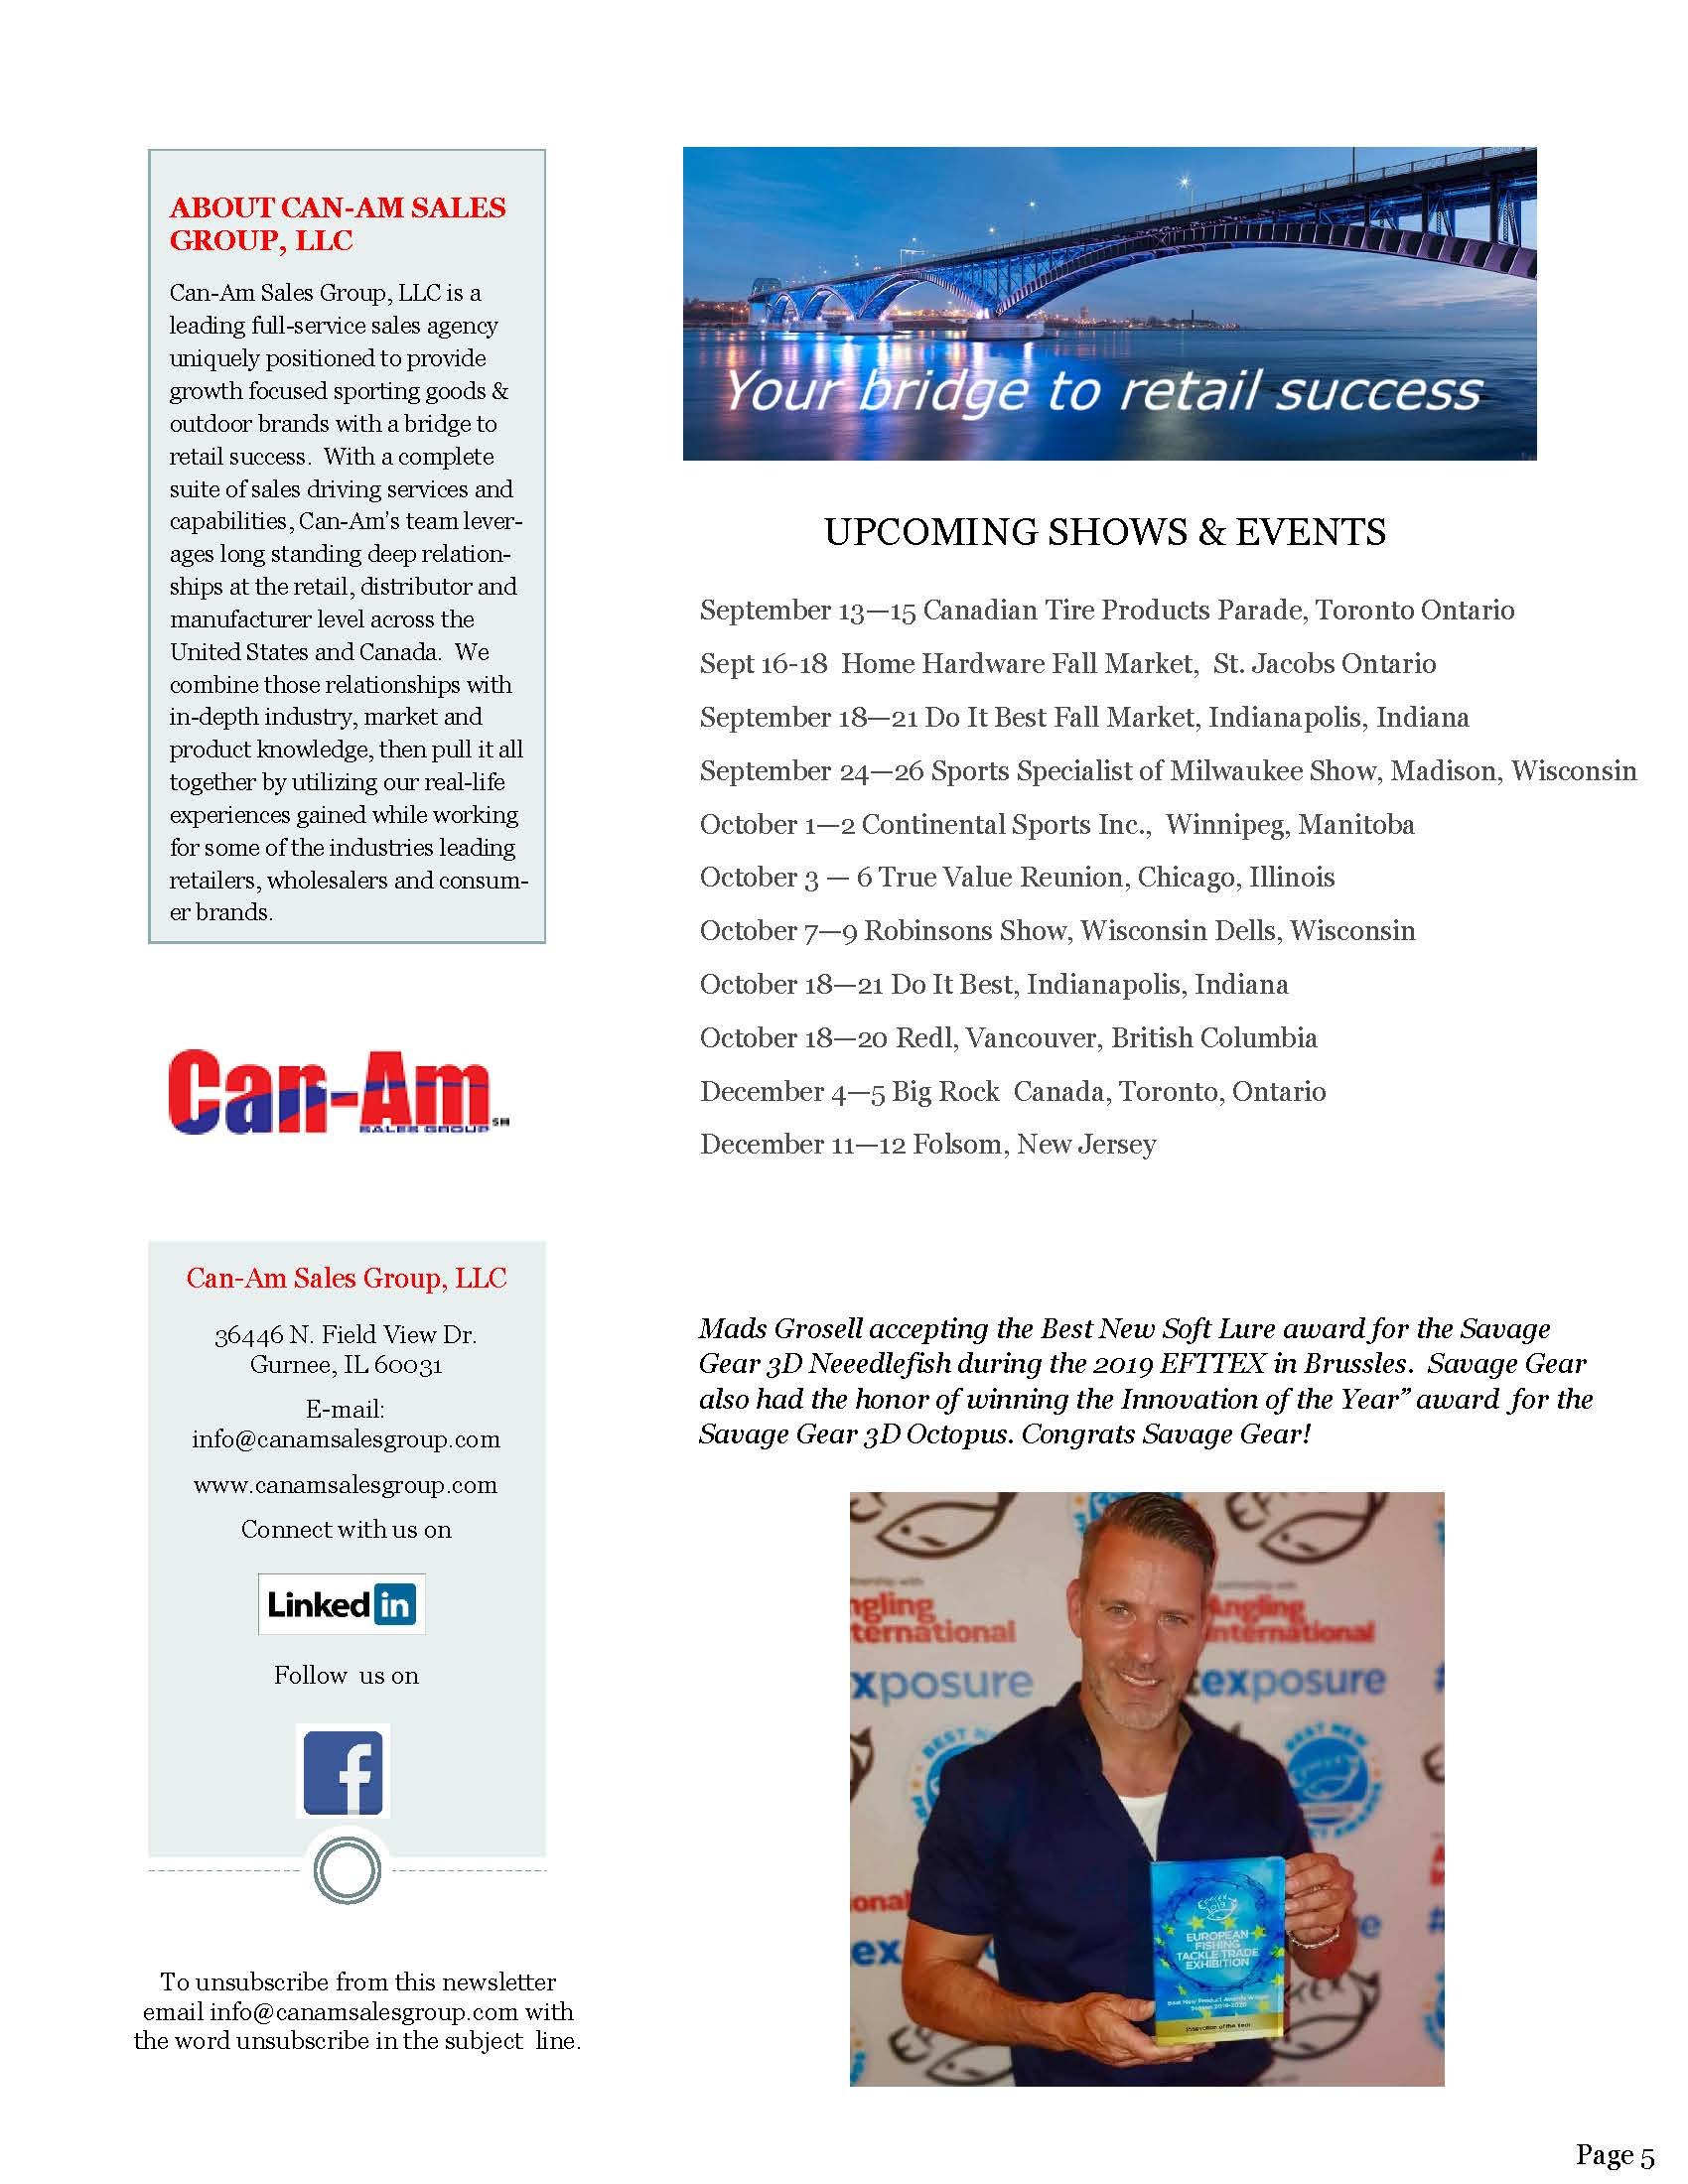 Can-Am Sales Group Newsletter Vol2-3-page 5